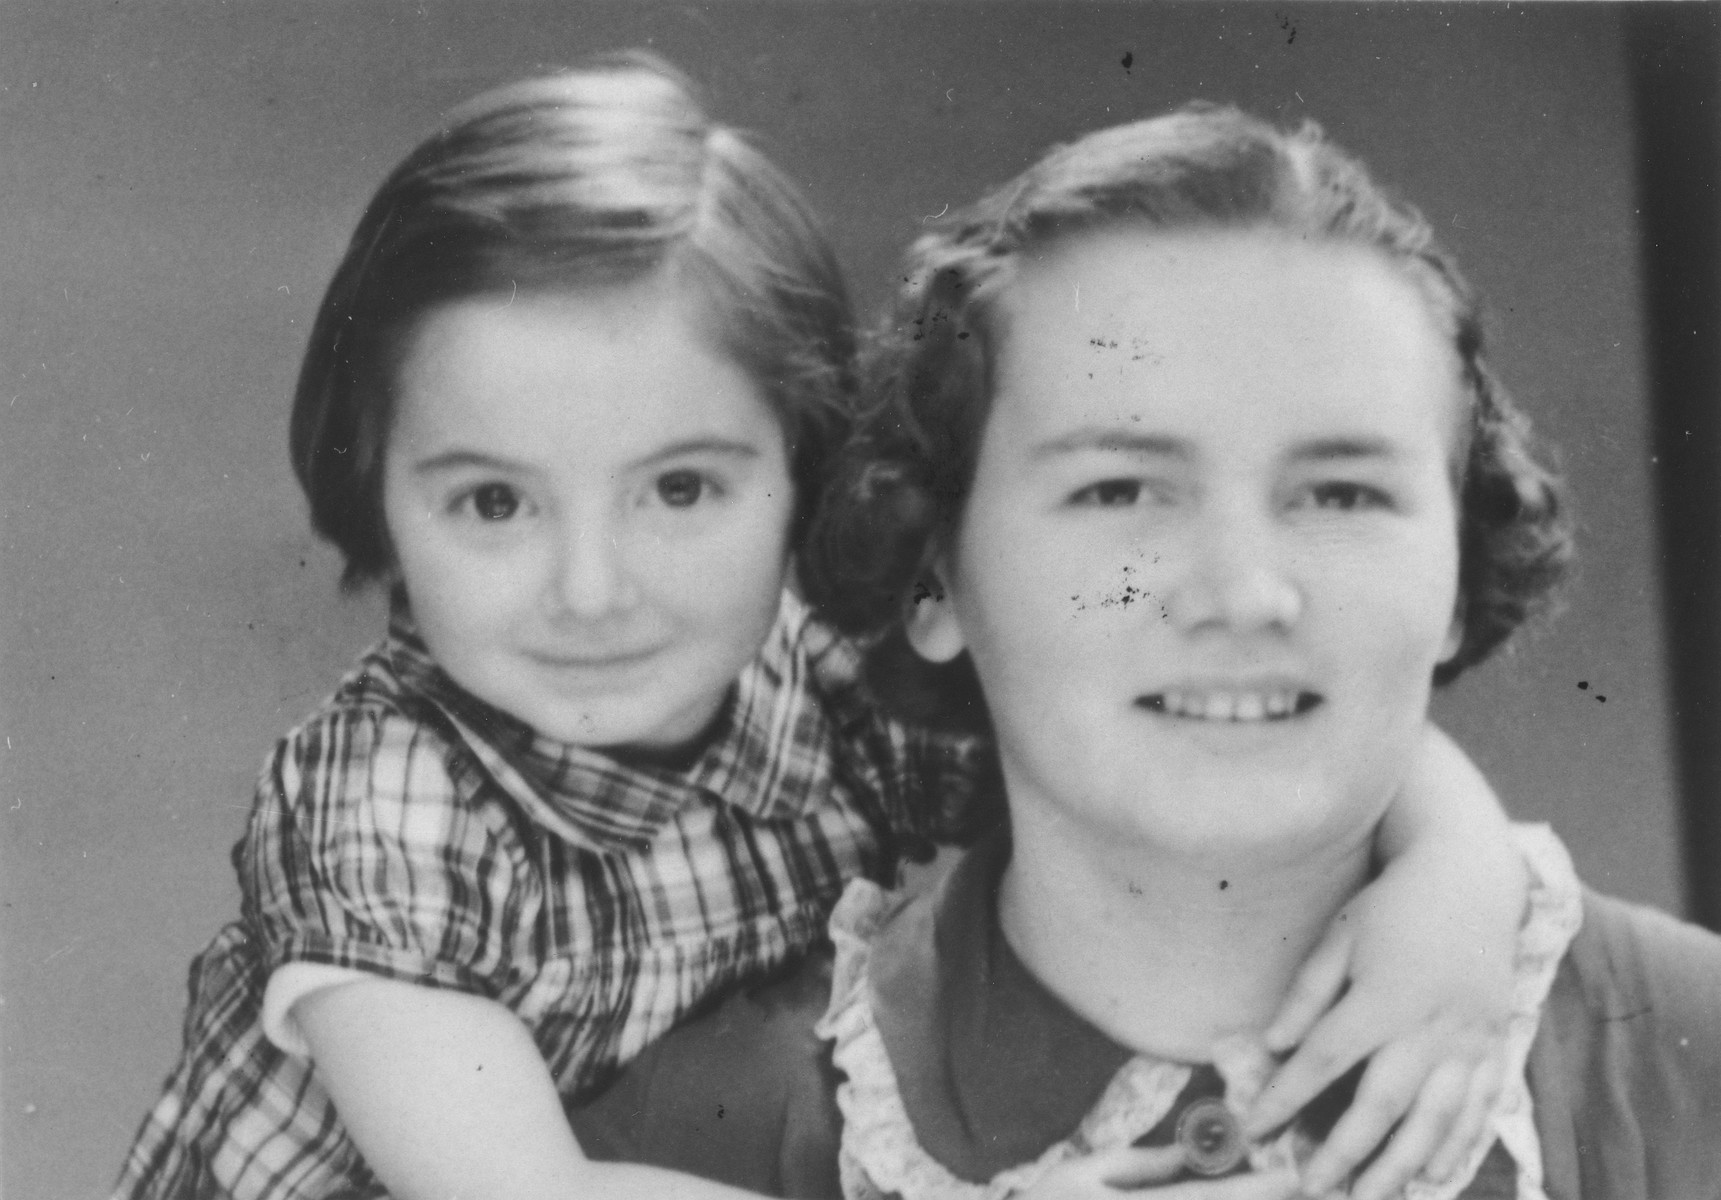 Portrait of a Jewish mother and child in Paris.  Pictured is Catherine Gotteszmann with her arms around her mother Helene.